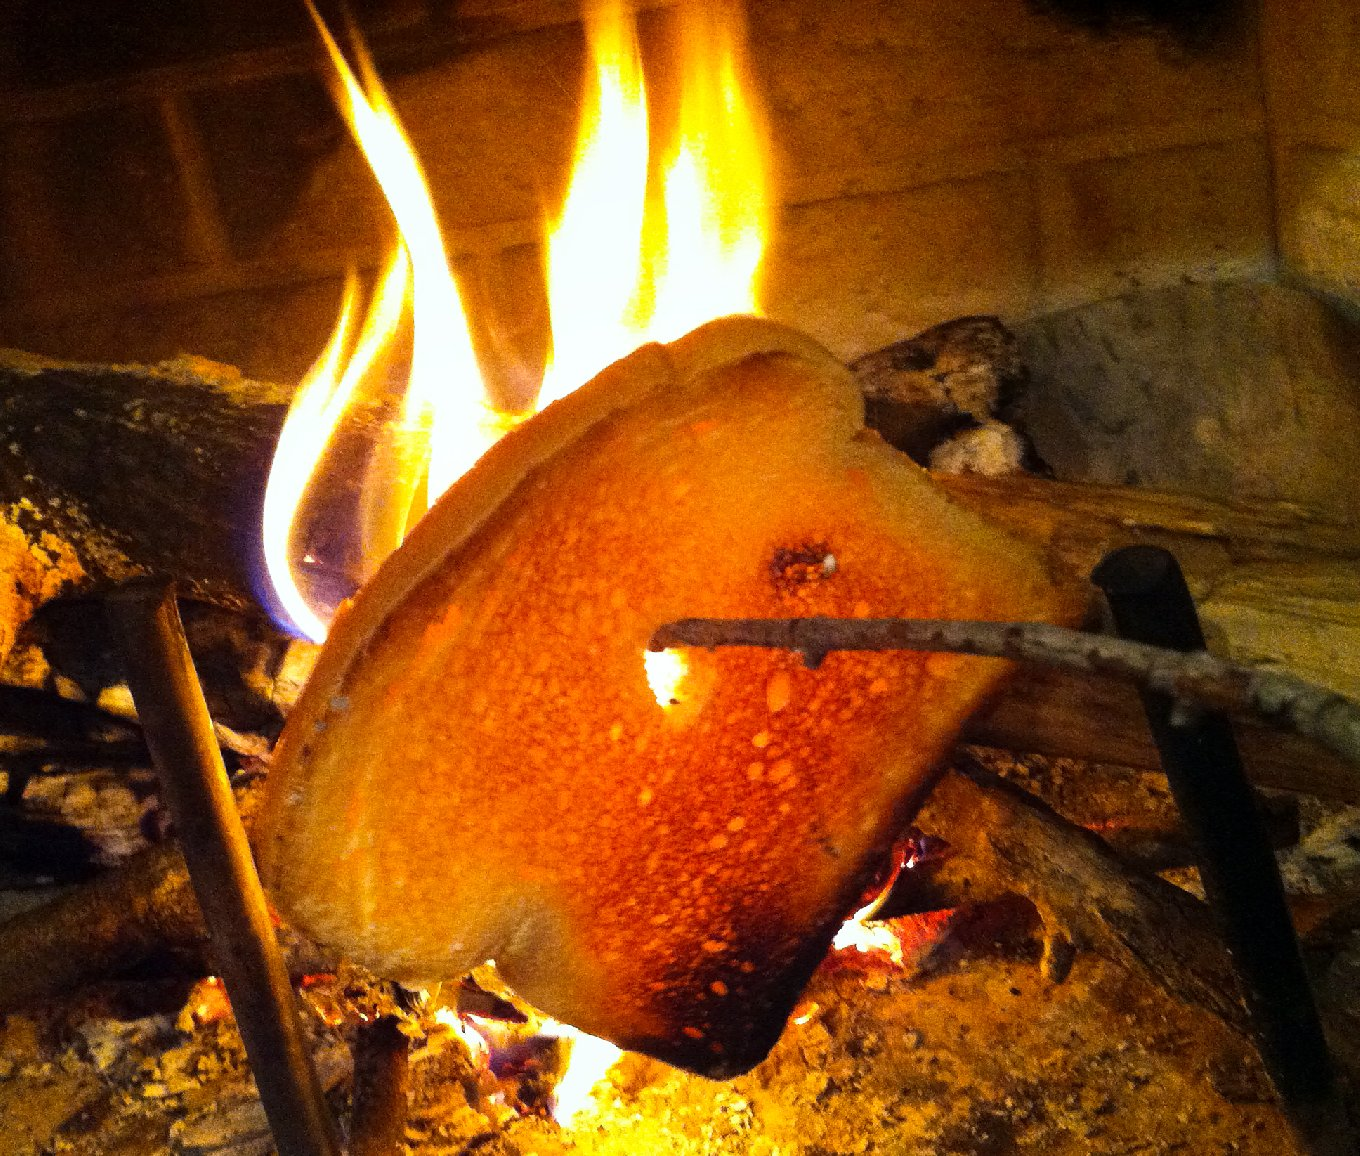 Fire-roasted toast will satisfy the smoke fiends at the breakfast table. Photo: Eliza Barclay/NPR